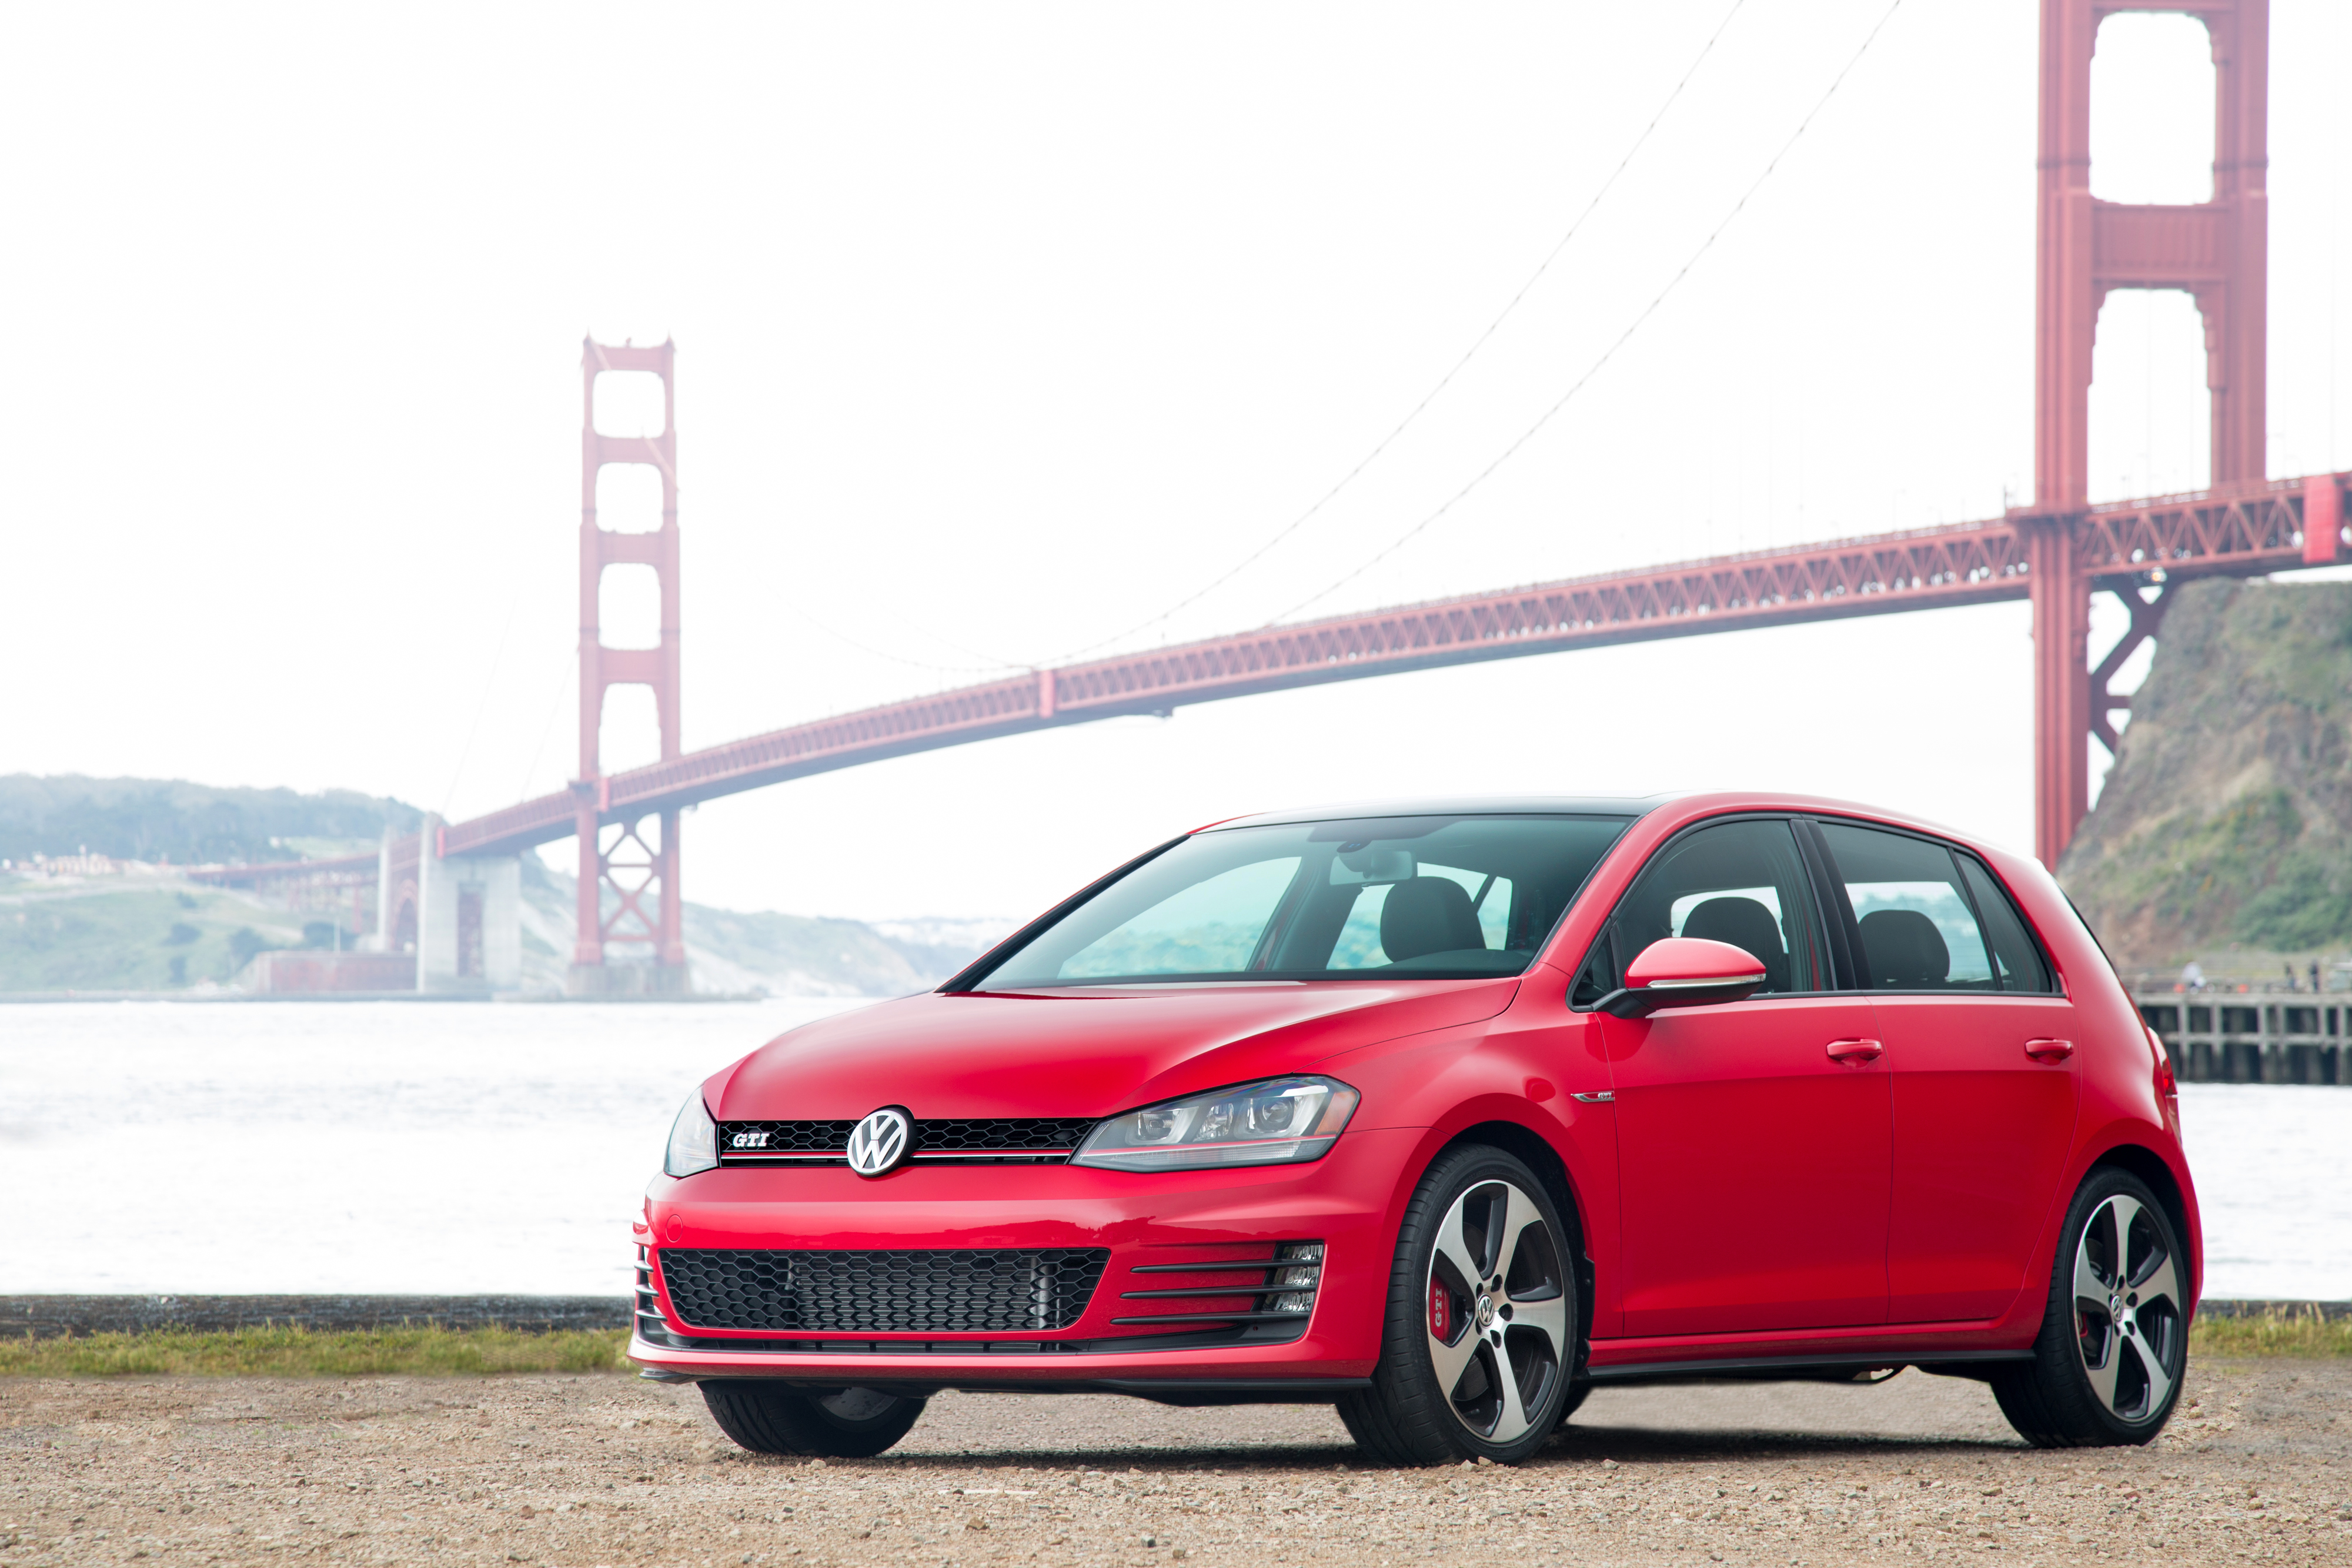 Quickest Cars For Under $25K